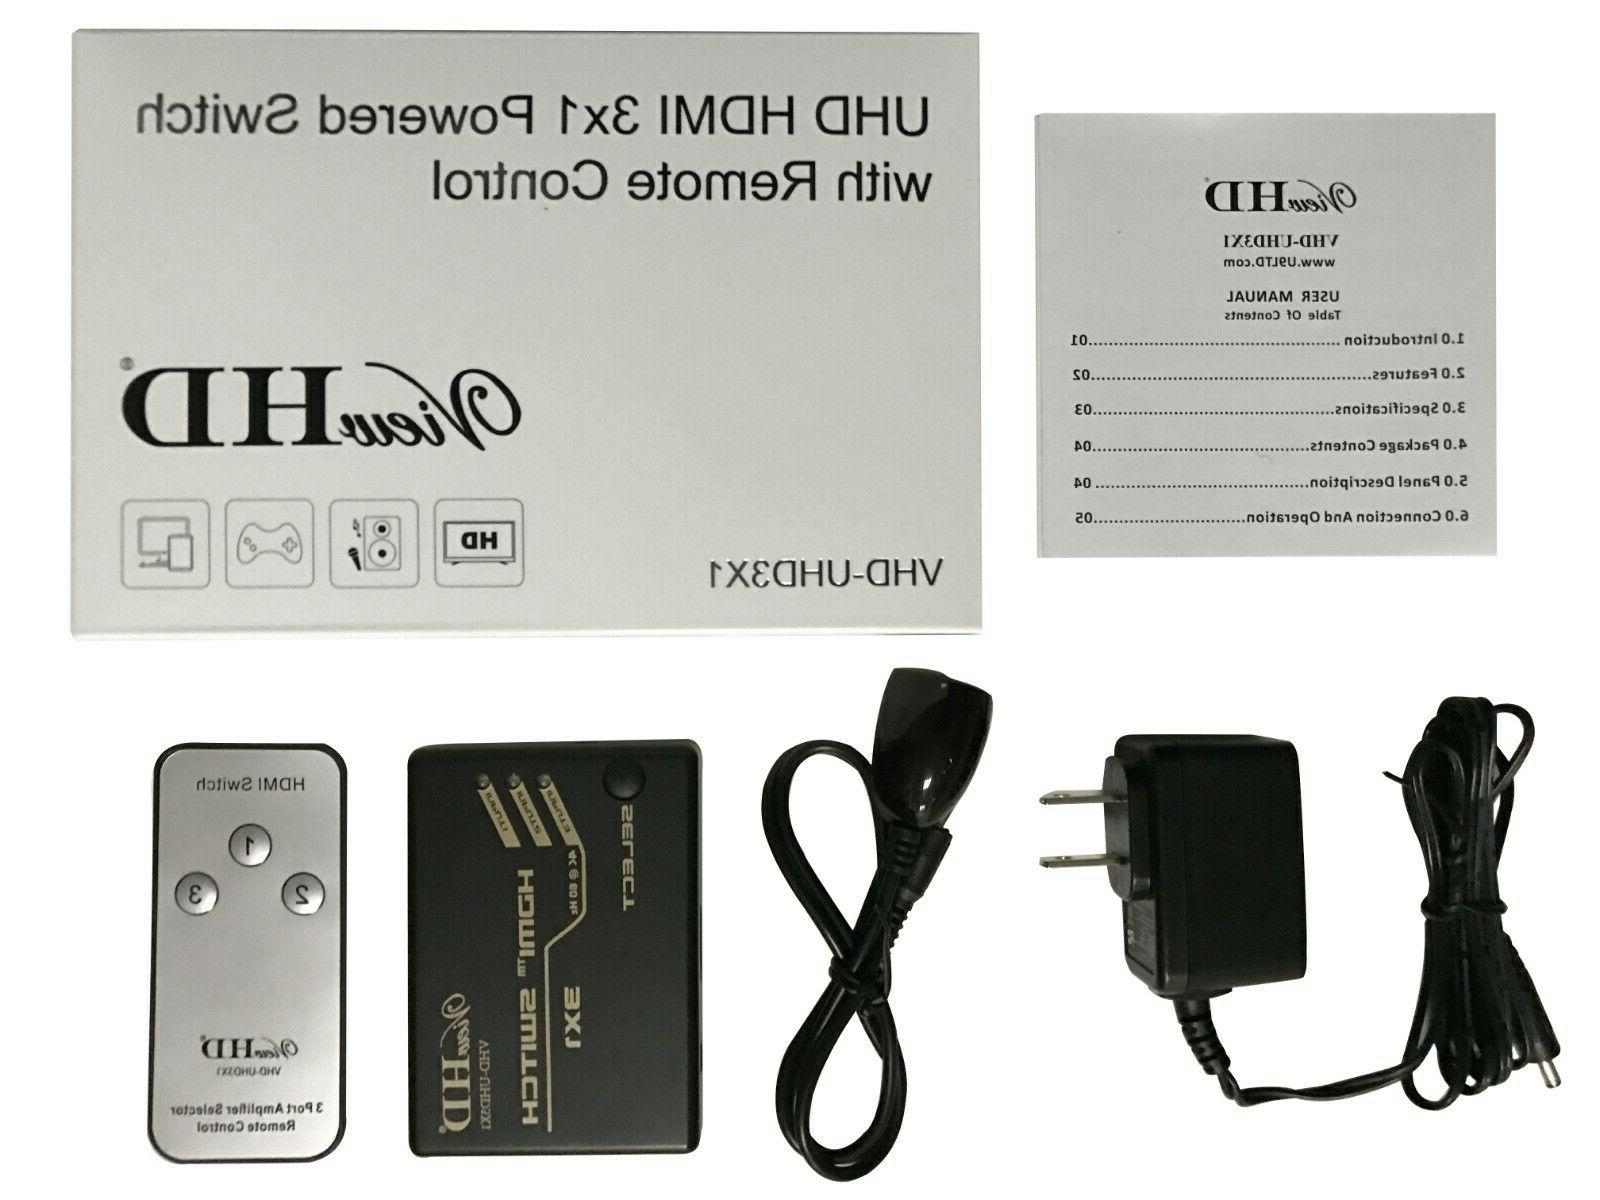 ViewHD 3x1 4K/60Hz HDR Vision HDMI Switch Outputs